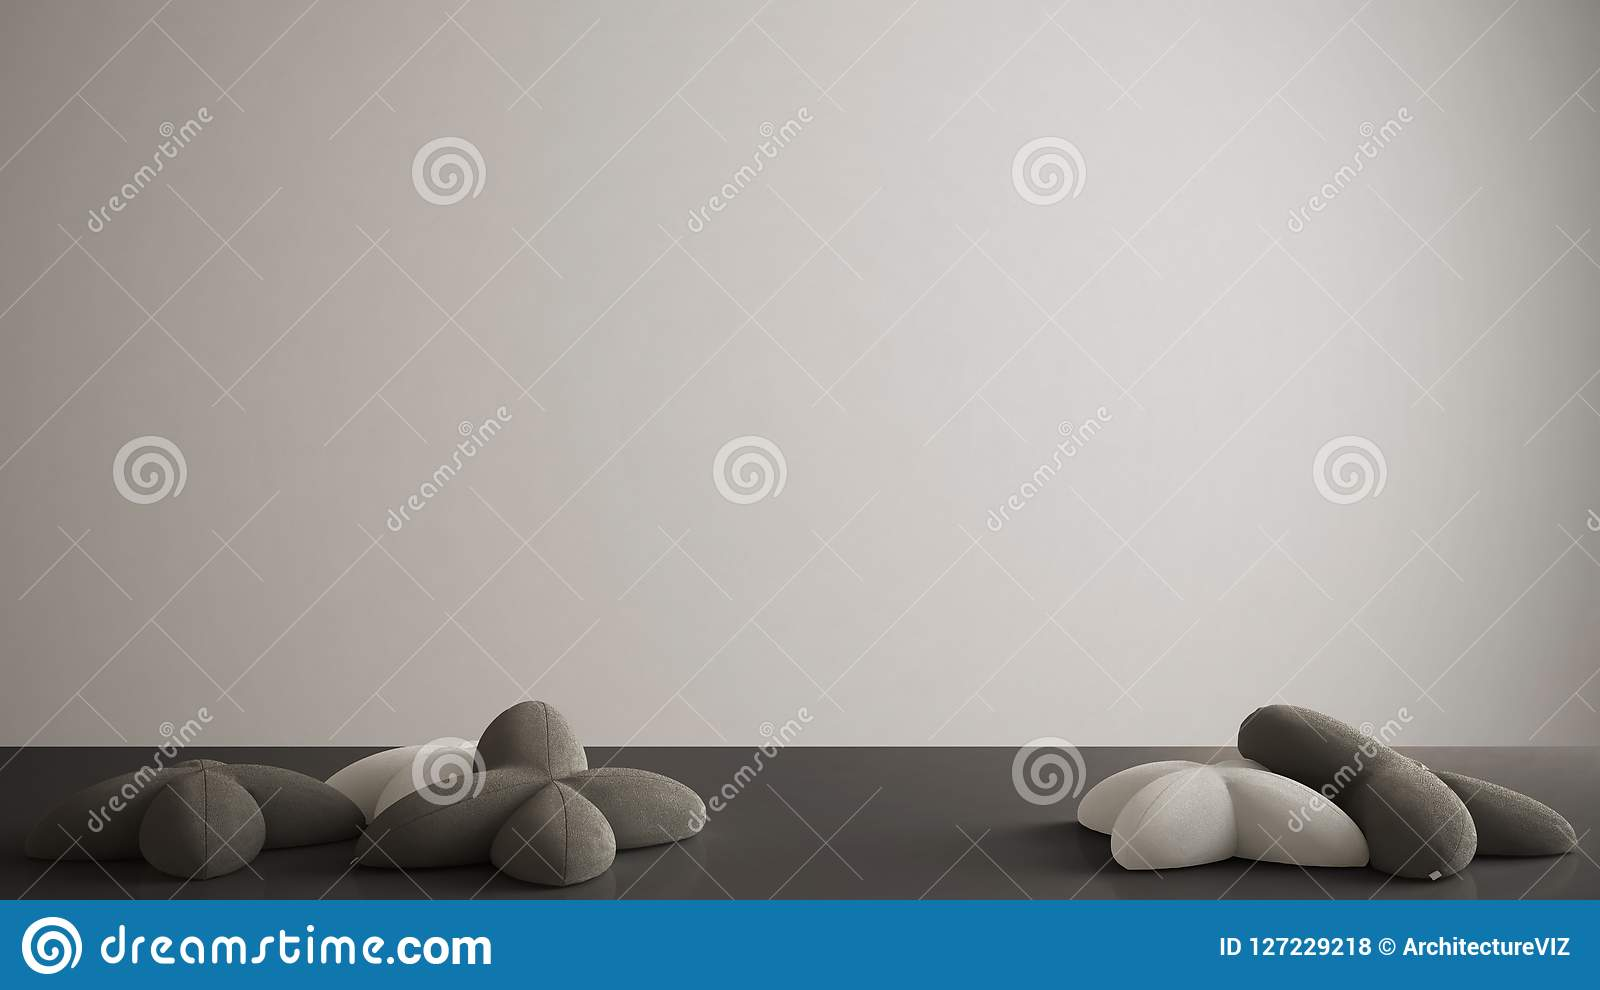 White table, desk or shelf with five soft gray and black pillows in the shape of stars, blank background with copy space, interior